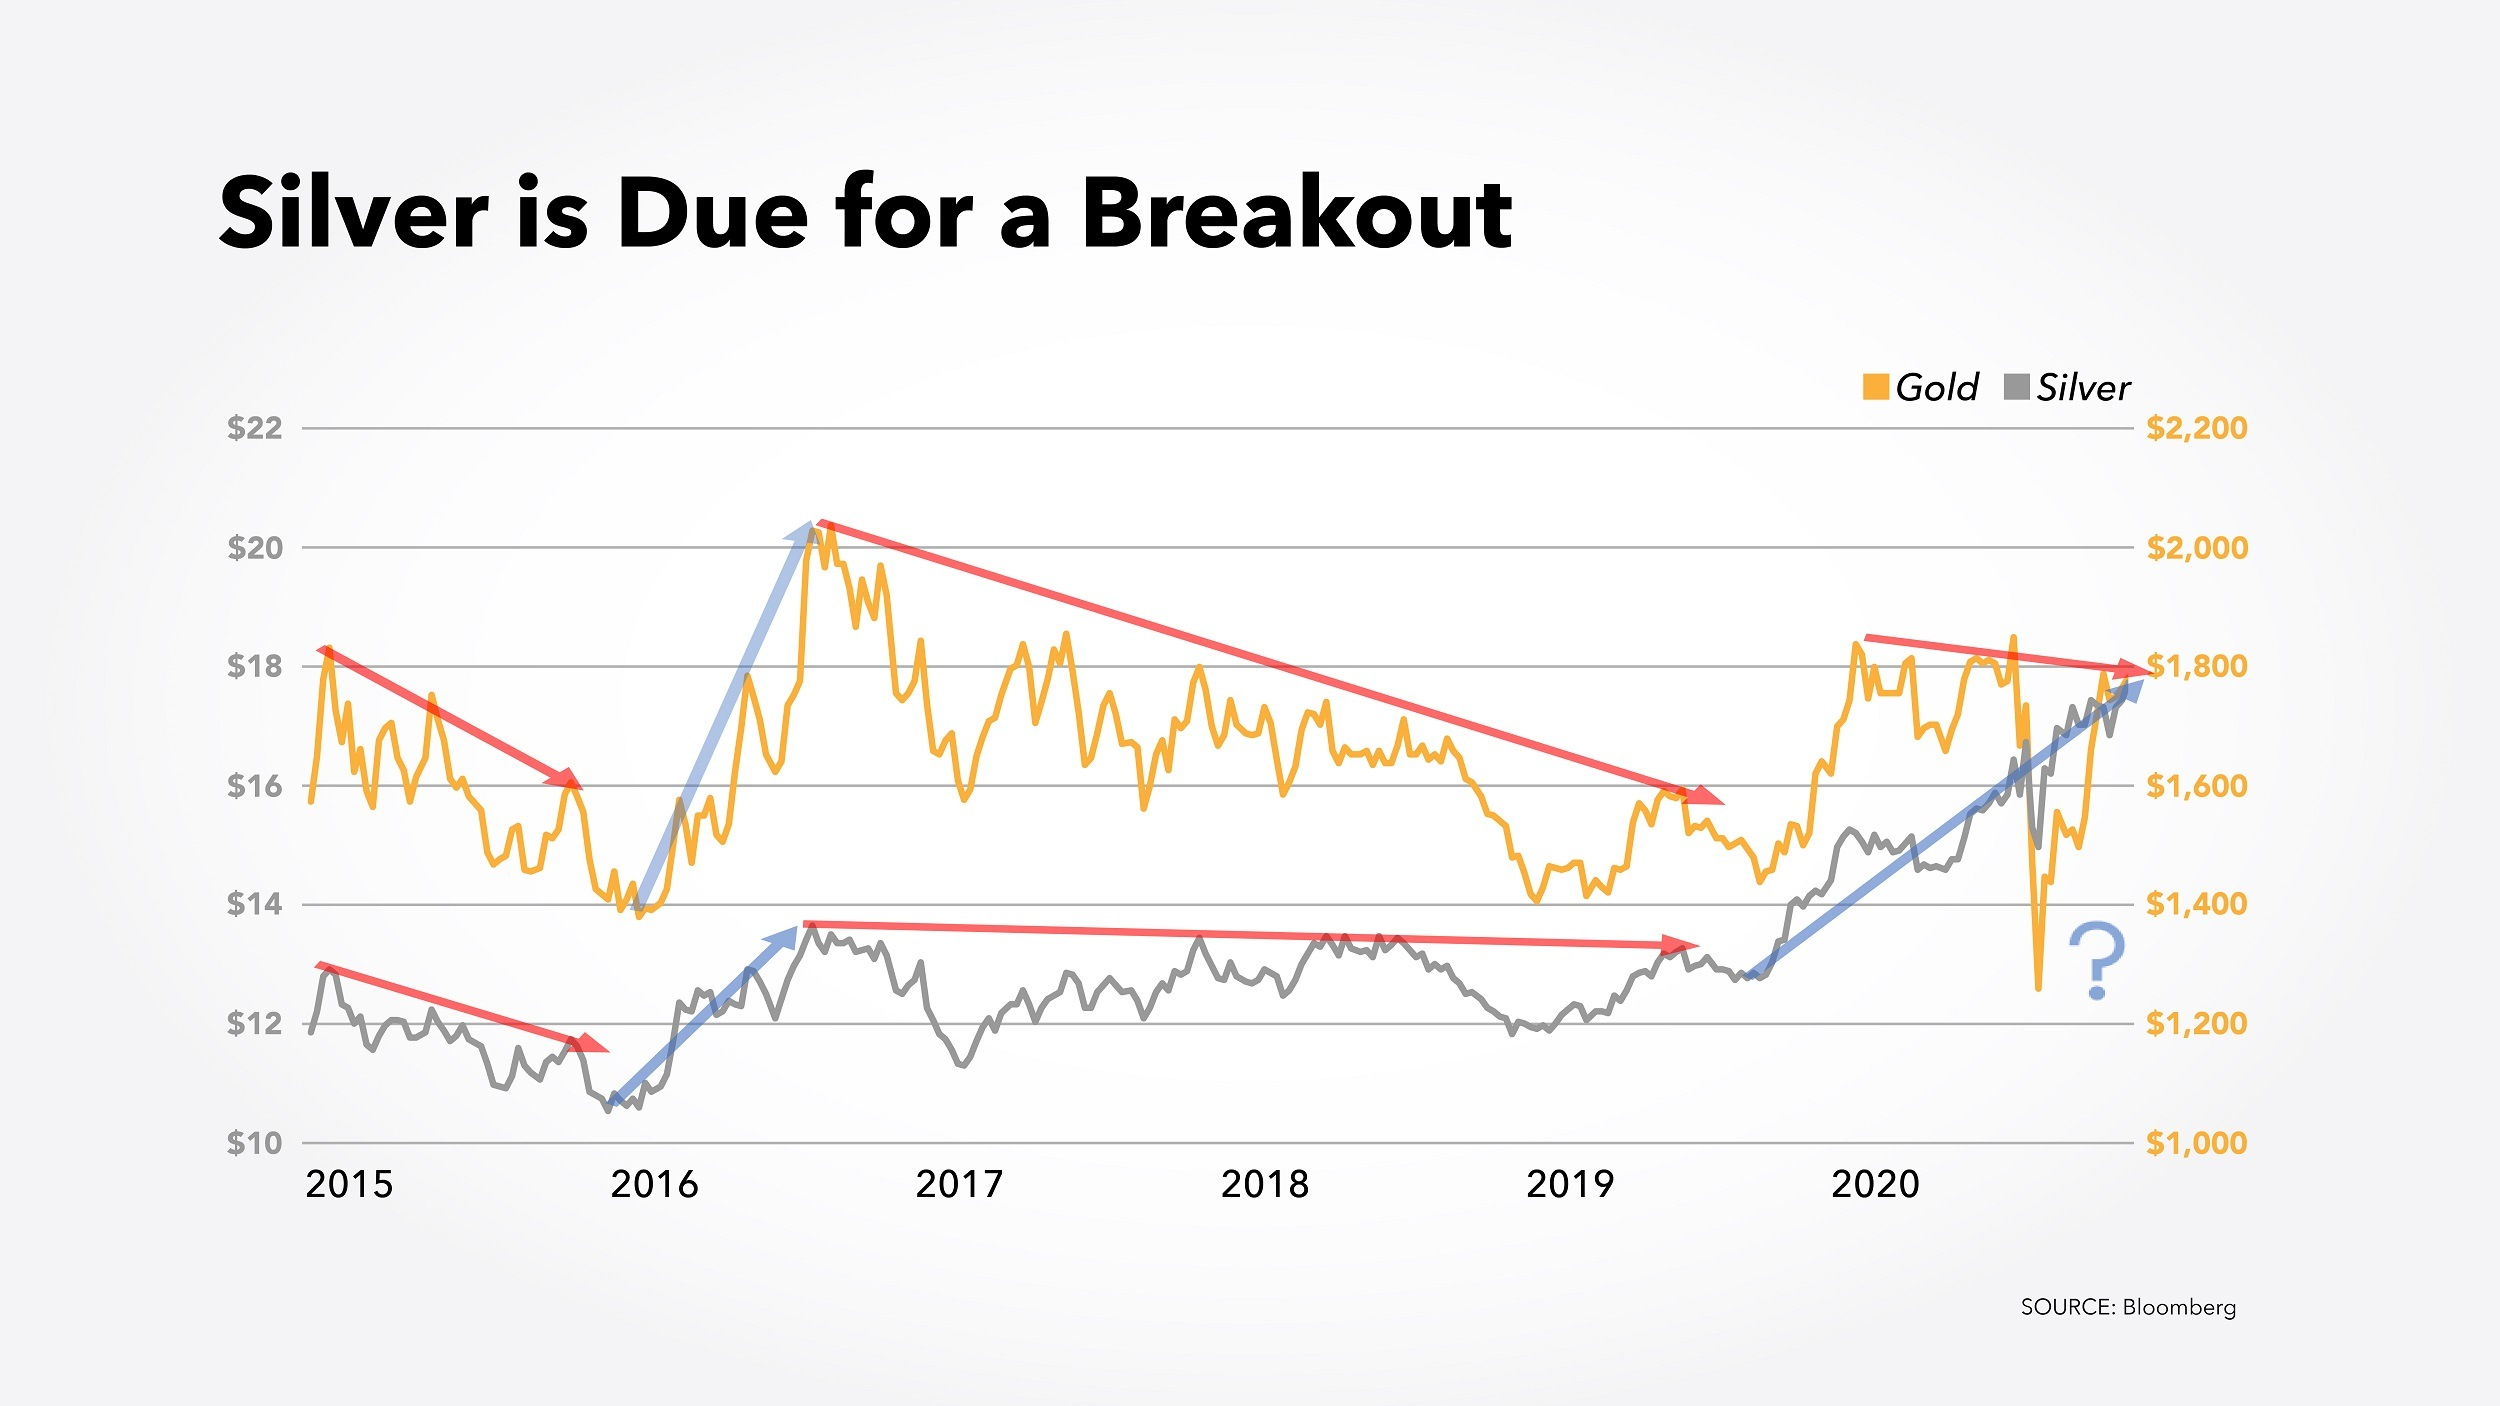 Chart showing that gold and silver prices have gone up and down at the same rate since 2015, but gold has spiked while silver hasn't.